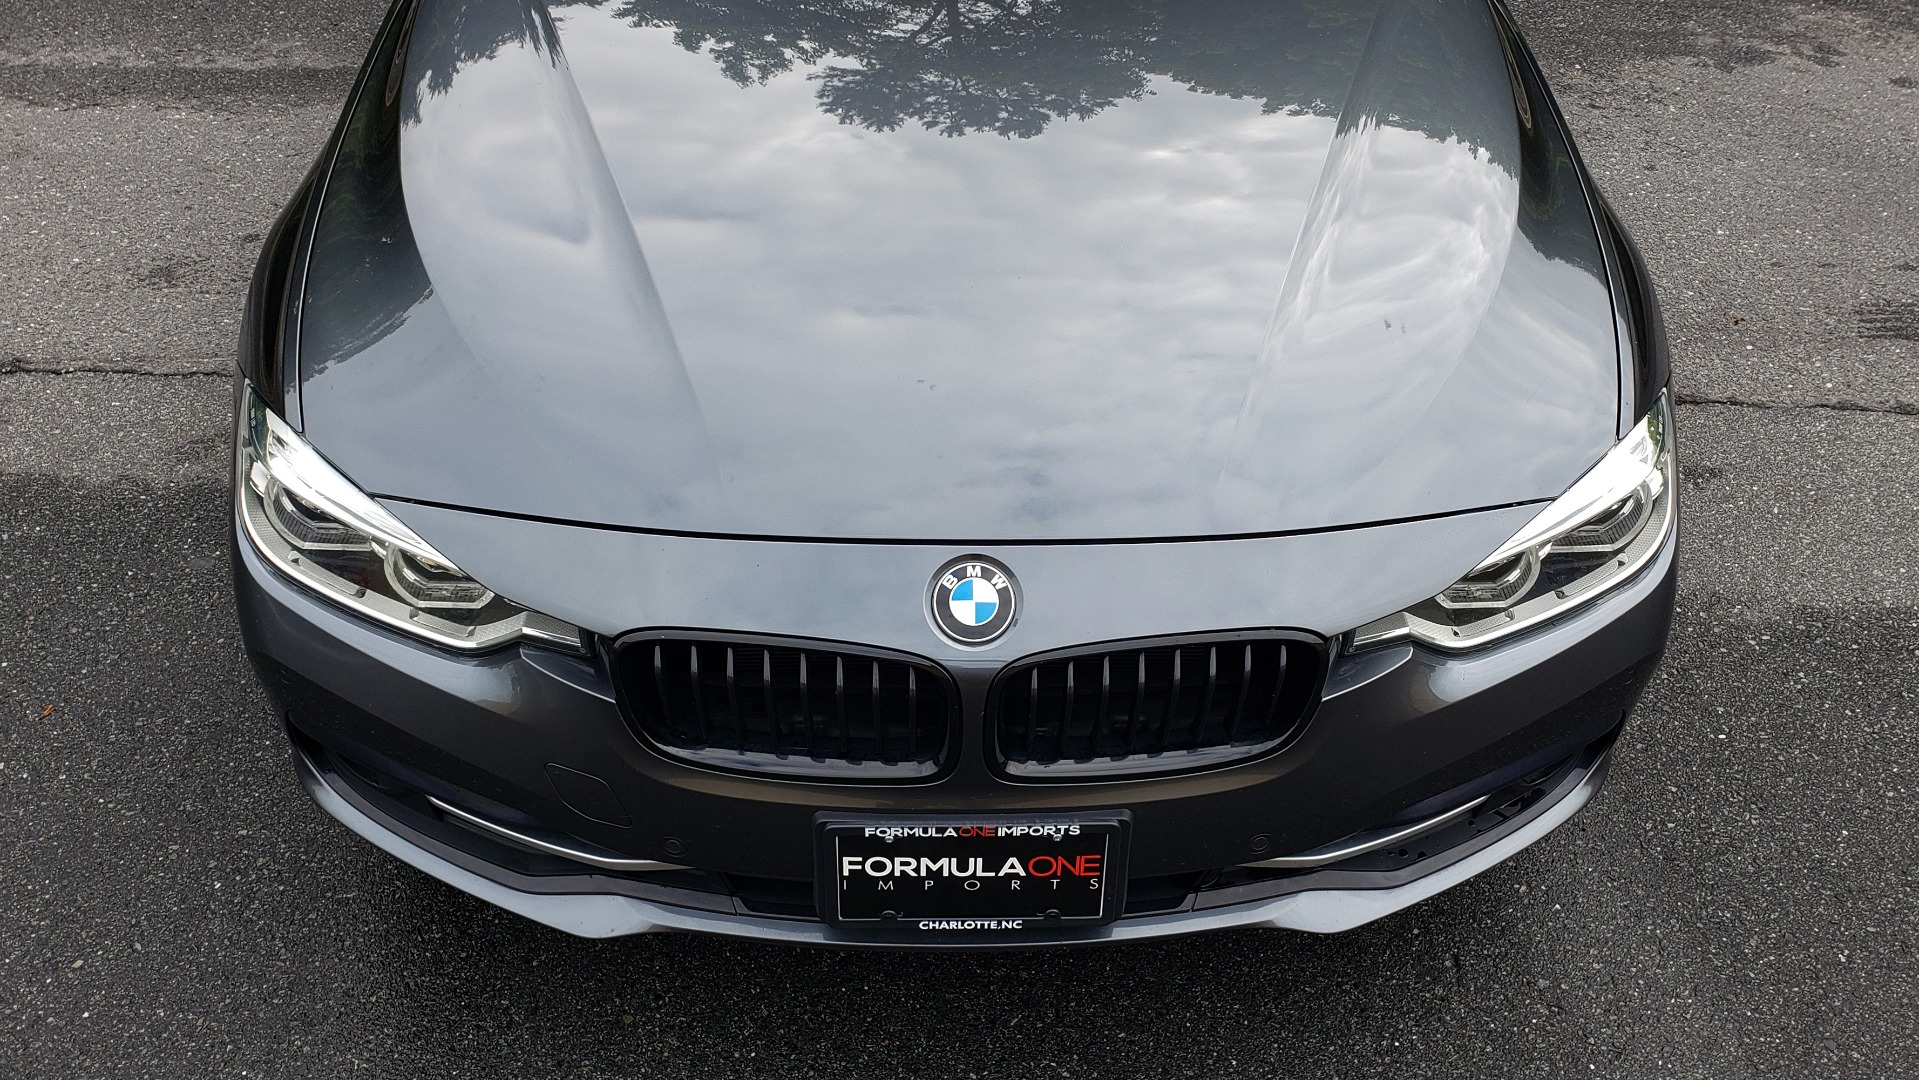 Used 2017 BMW 3 SERIES 340I XDRIVE SPORT / NAV / DRVR ASST PLUS / PARK ASST / CLD WTHR for sale $28,995 at Formula Imports in Charlotte NC 28227 20